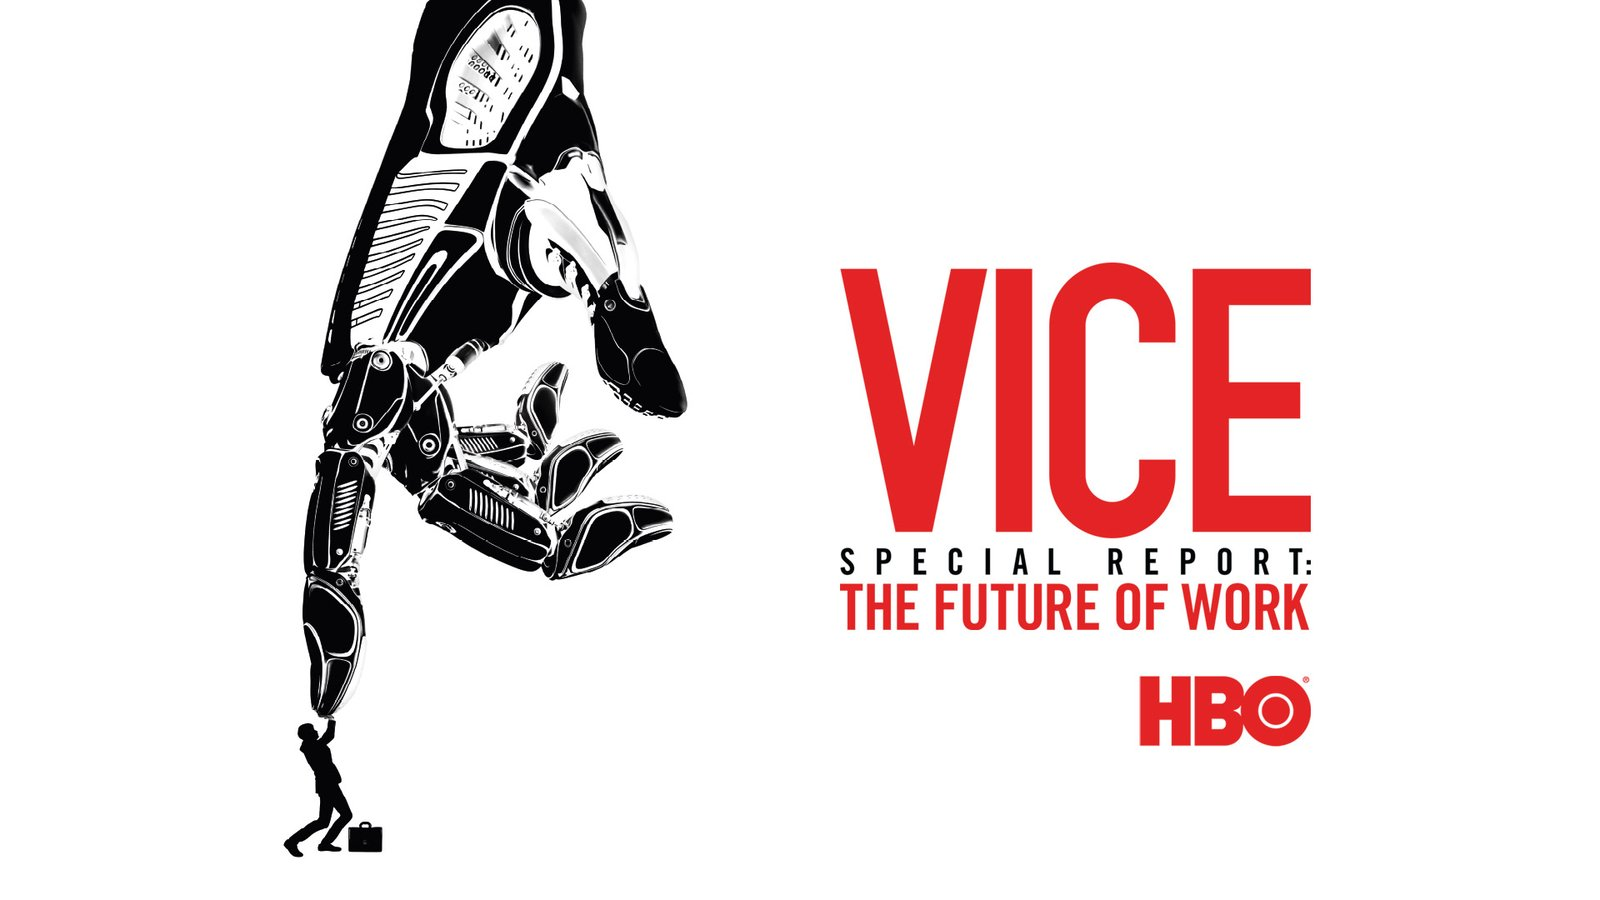 The Future of Work - A Vice Special Report